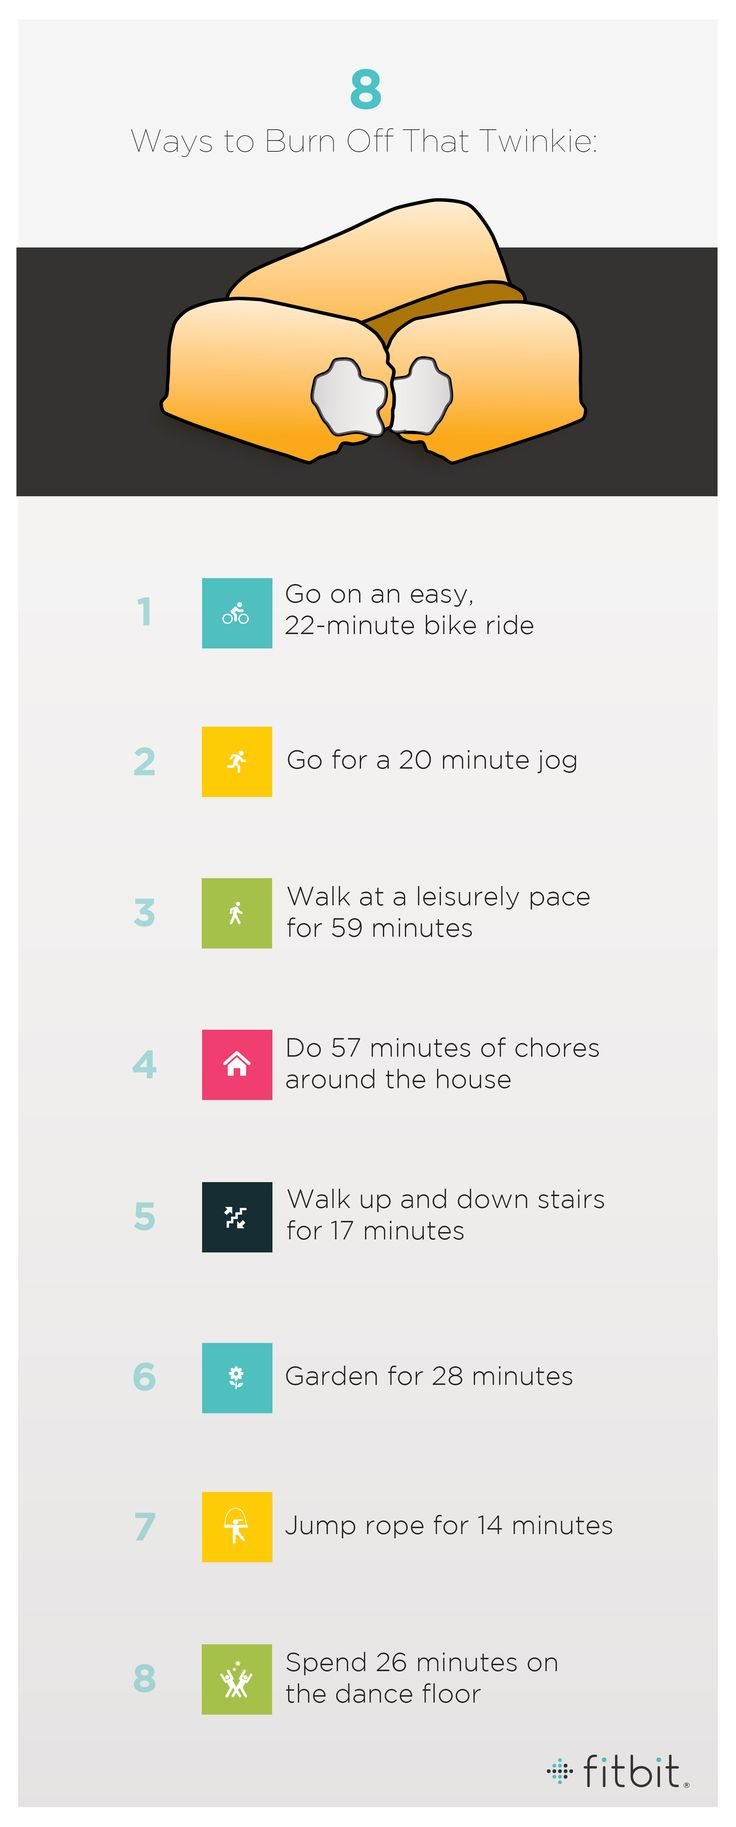 Rumor has it that Twinkies are back on store shelves today. If anyone decides to indulge themselves in the spongy snack, here's some ways the average person can burn off all 150 calories afterwards!